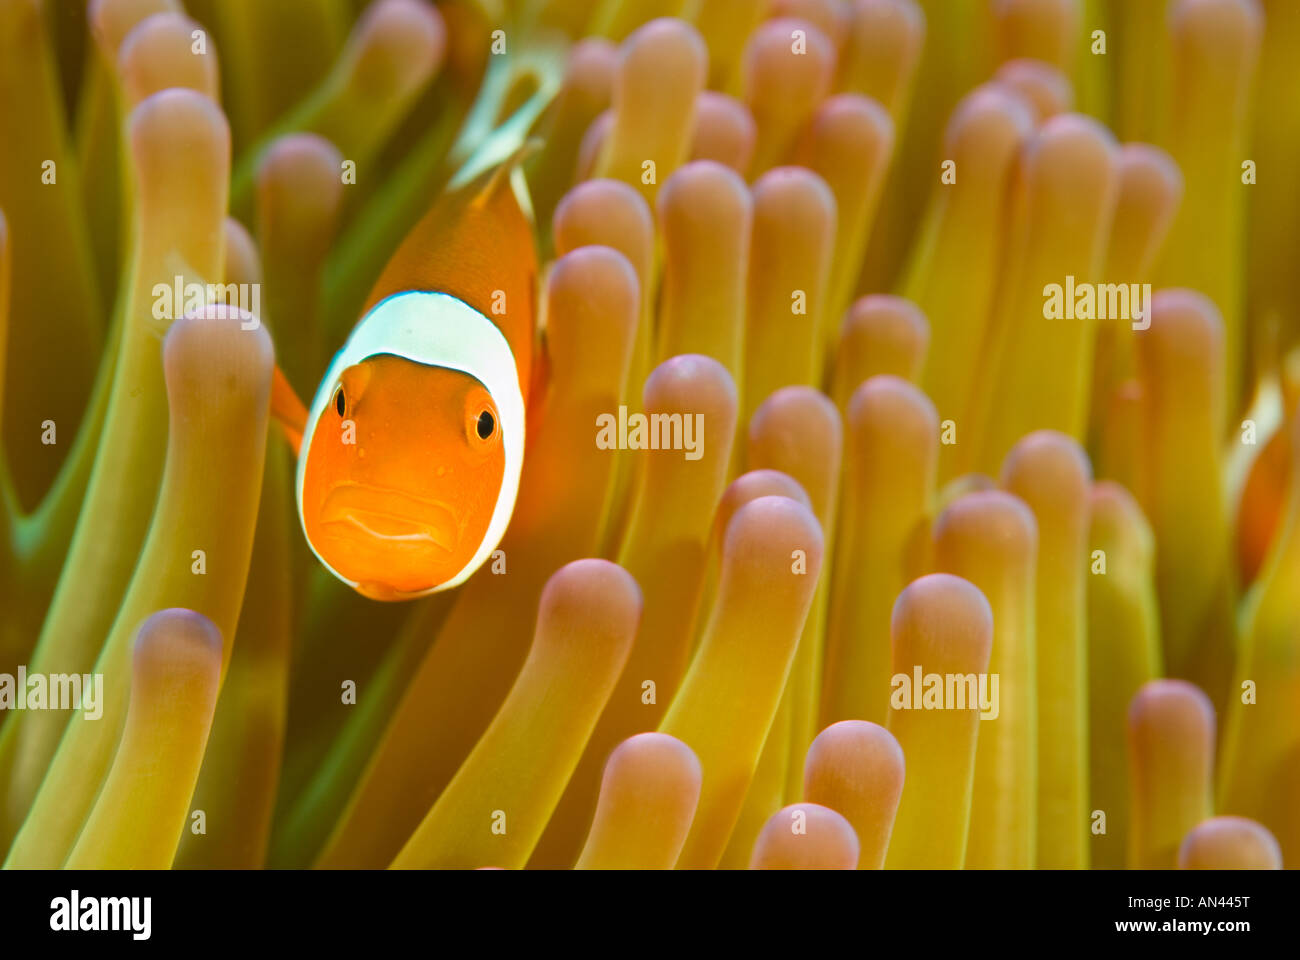 Clownfish Amphiprion ocellaris in a magnificient sea anemone Heteractis magnifica Komodo National Park Indonesia - Stock Image